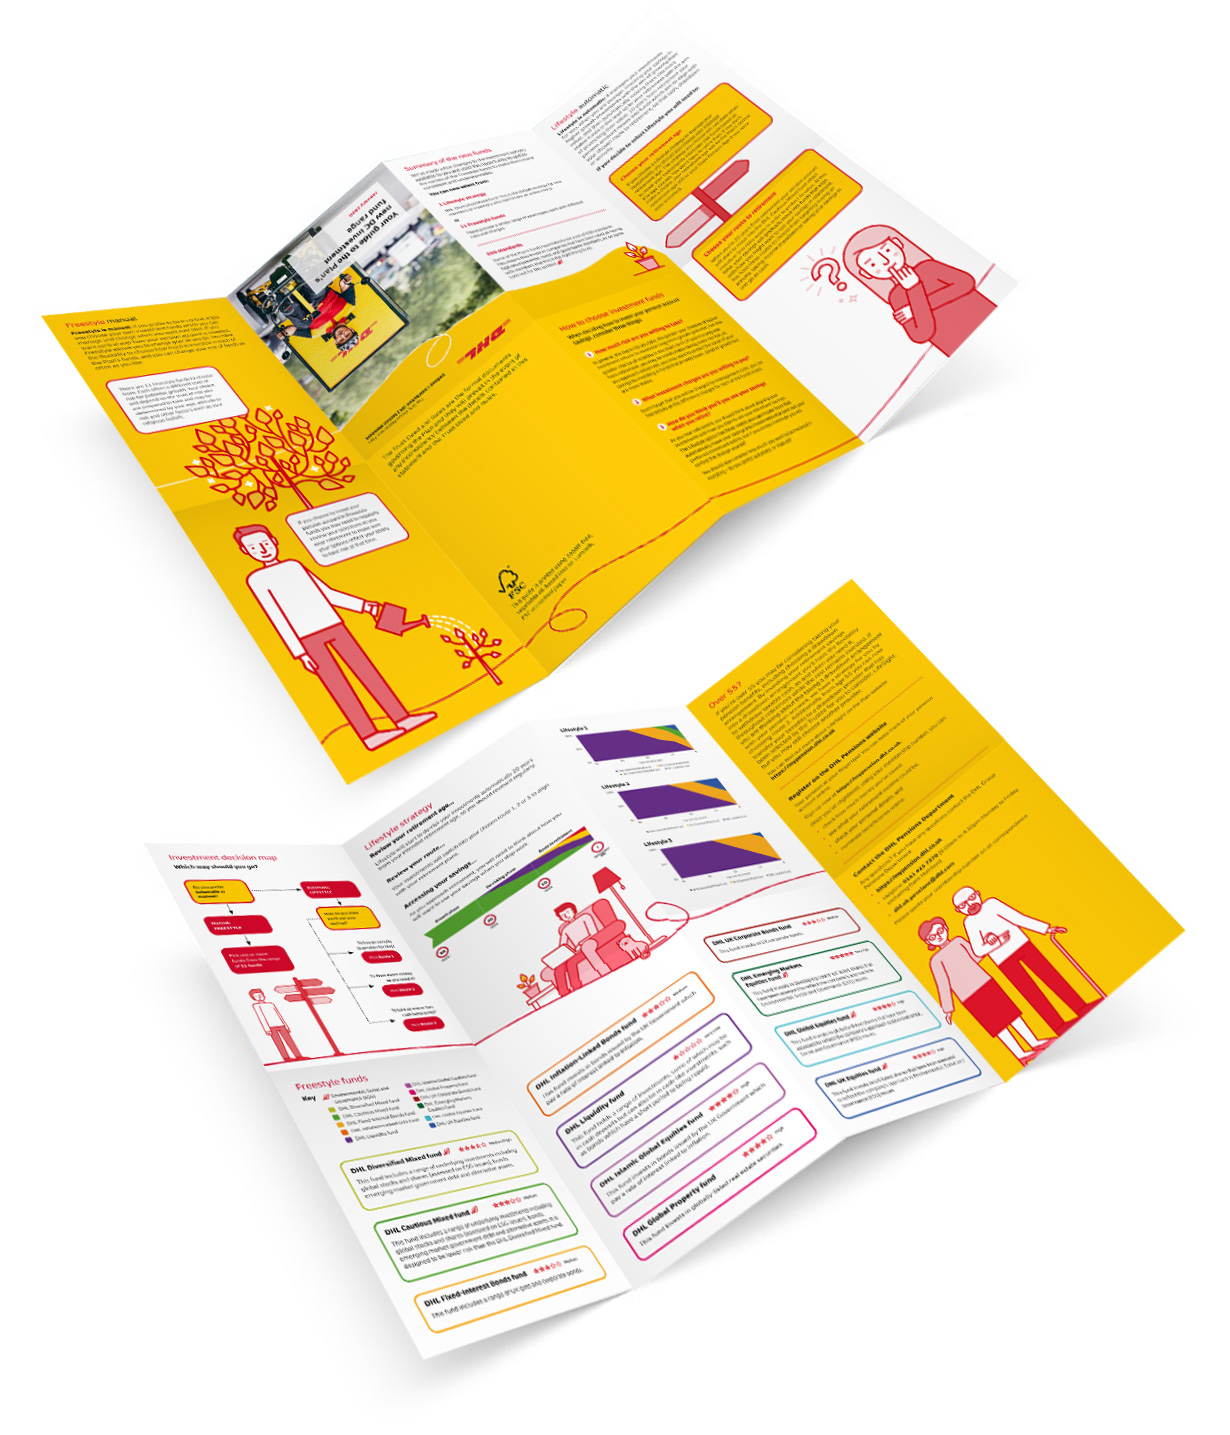 DHL first draft fold out leaflet, front and back